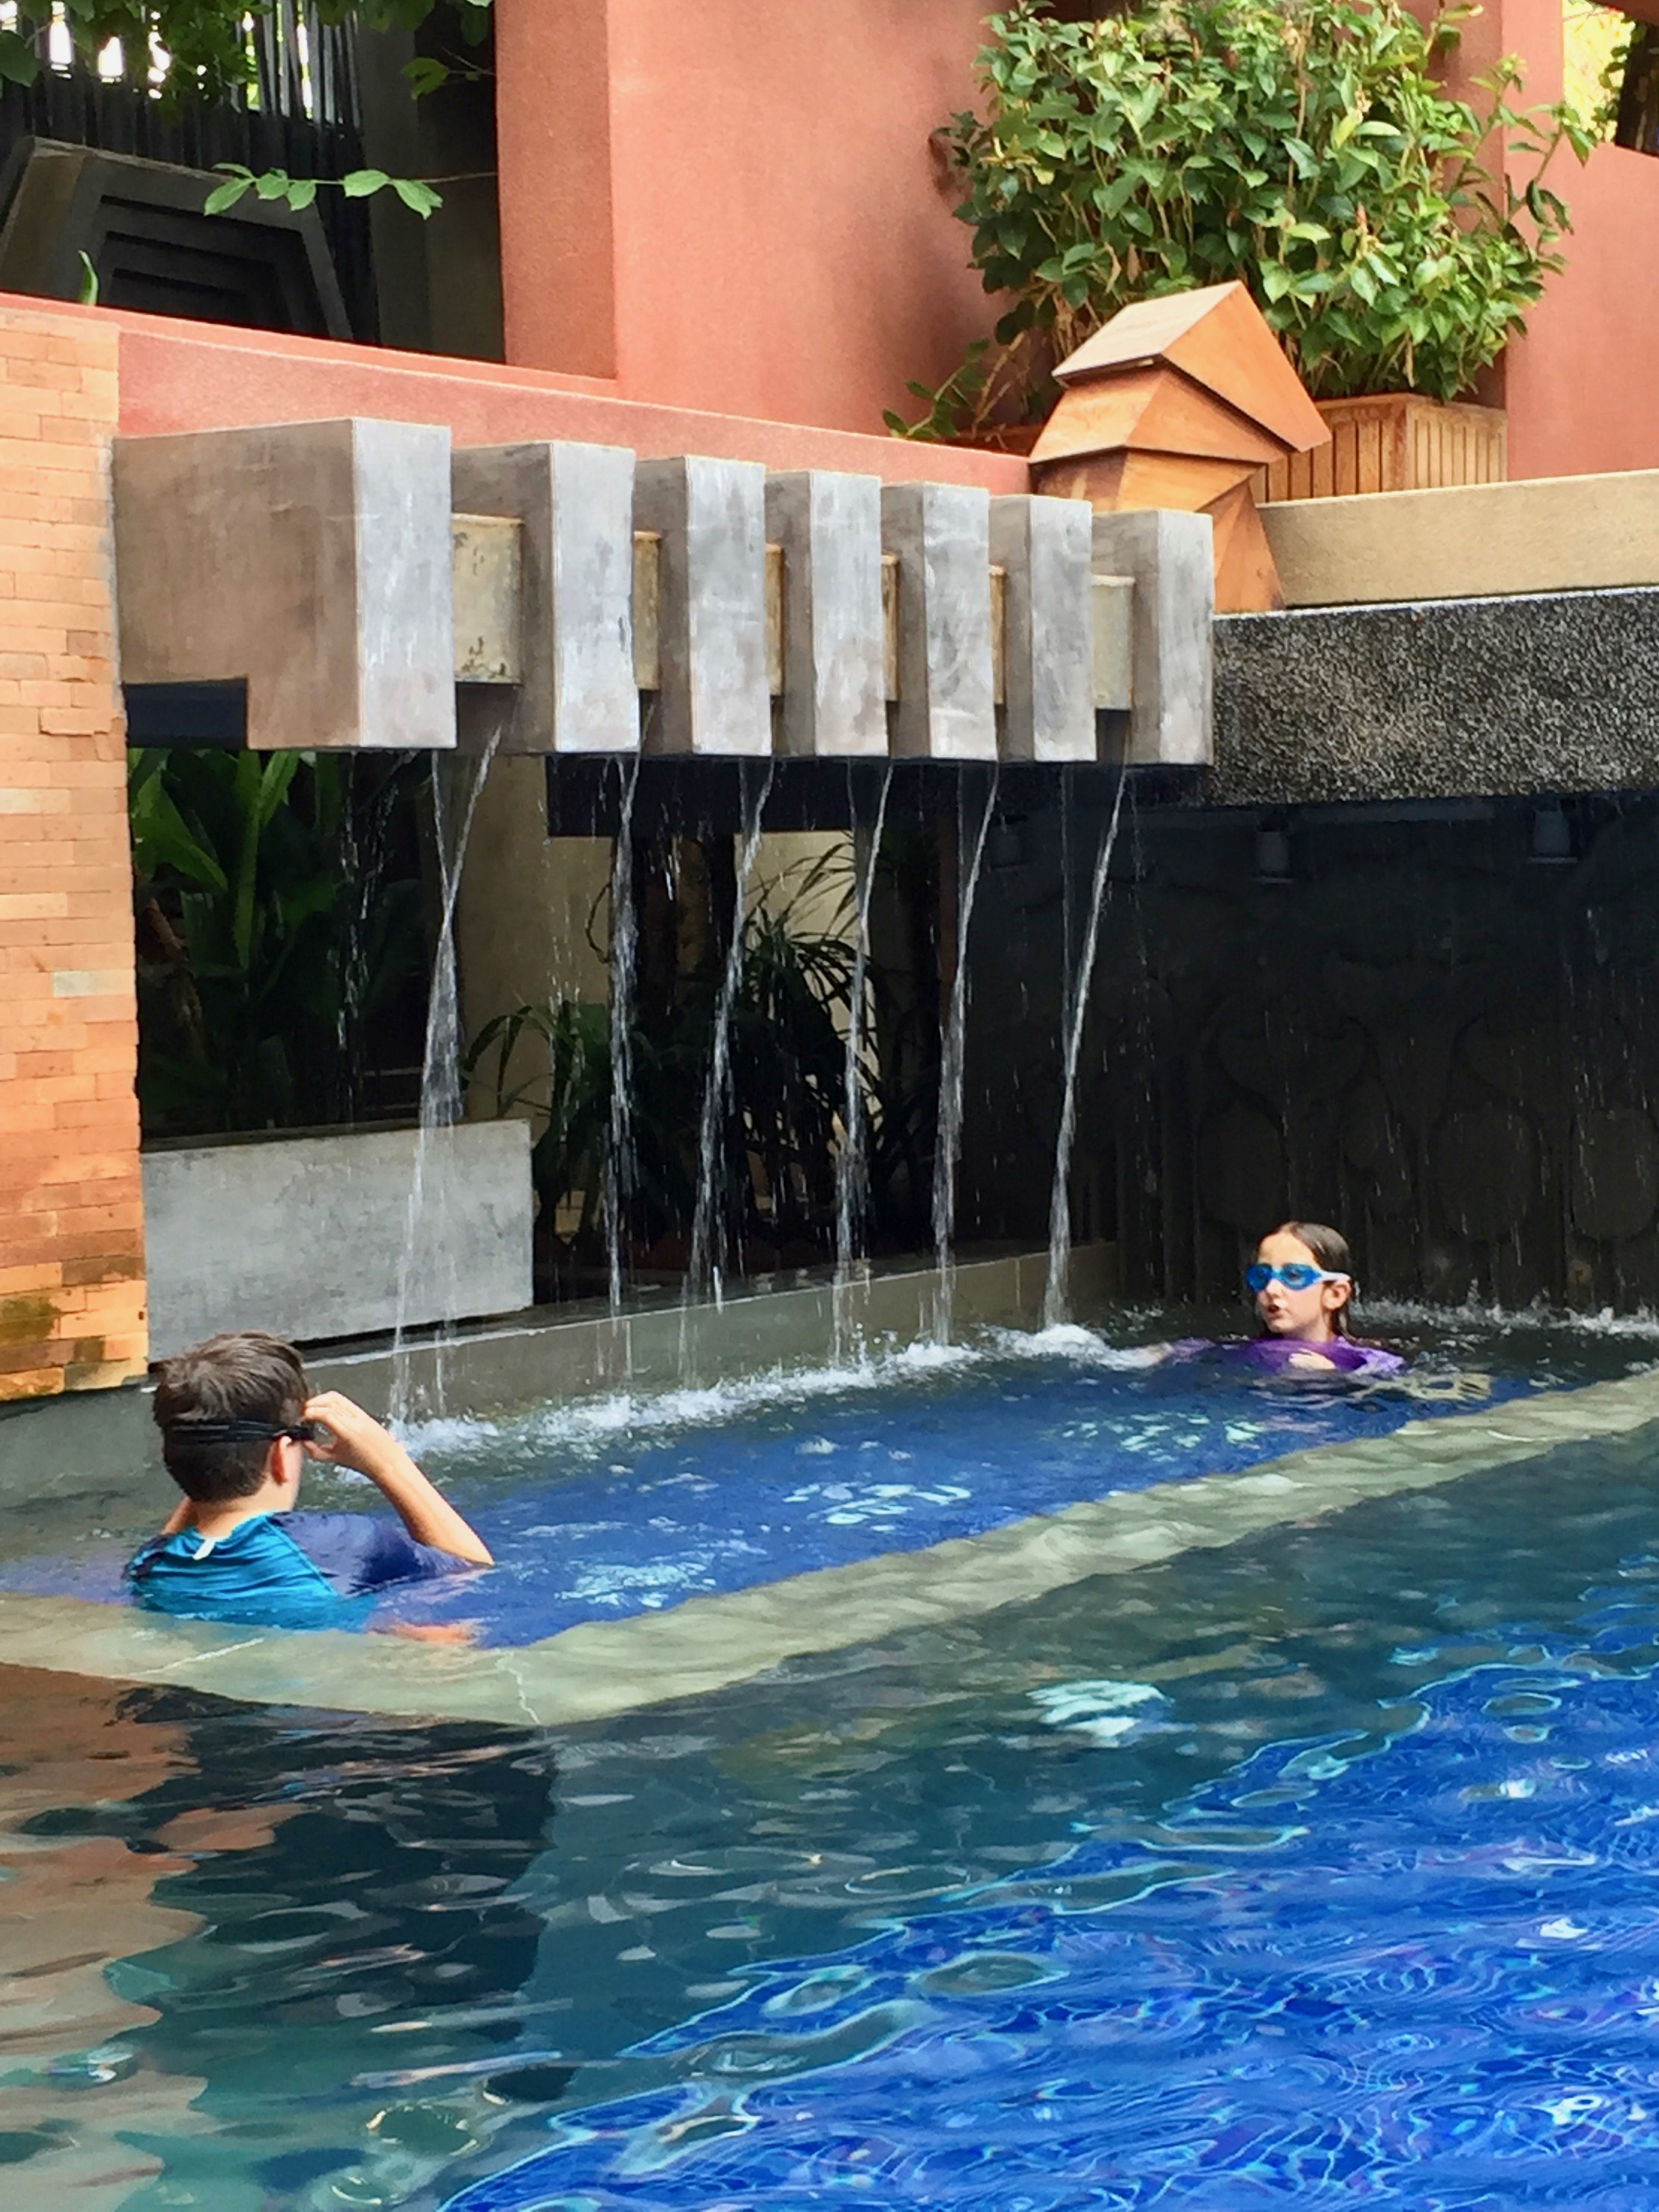 Siem Reap, Cambodia, Golden Temple Residence, Ankor Wat, Family vacation, family travel, SE Asia, Travel